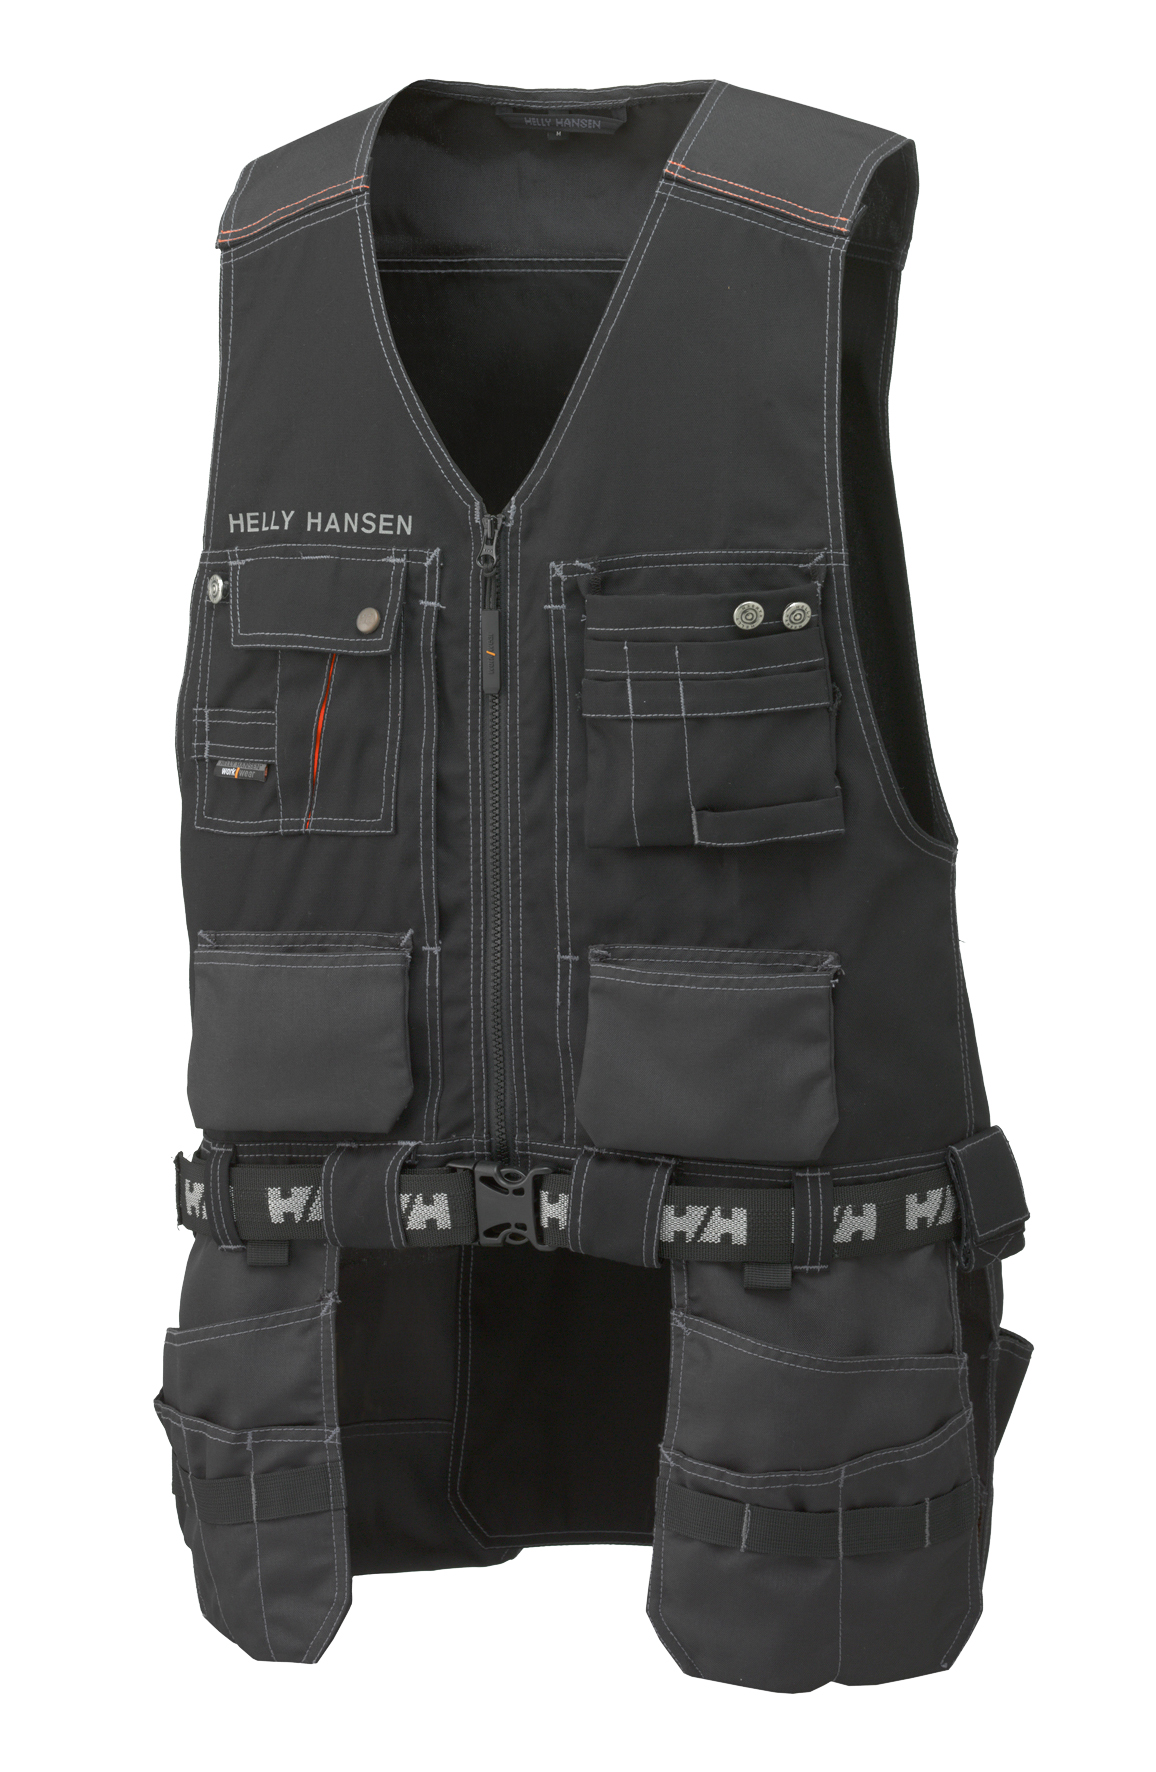 Chelsea Construction Vest - Black/Charcoal - S